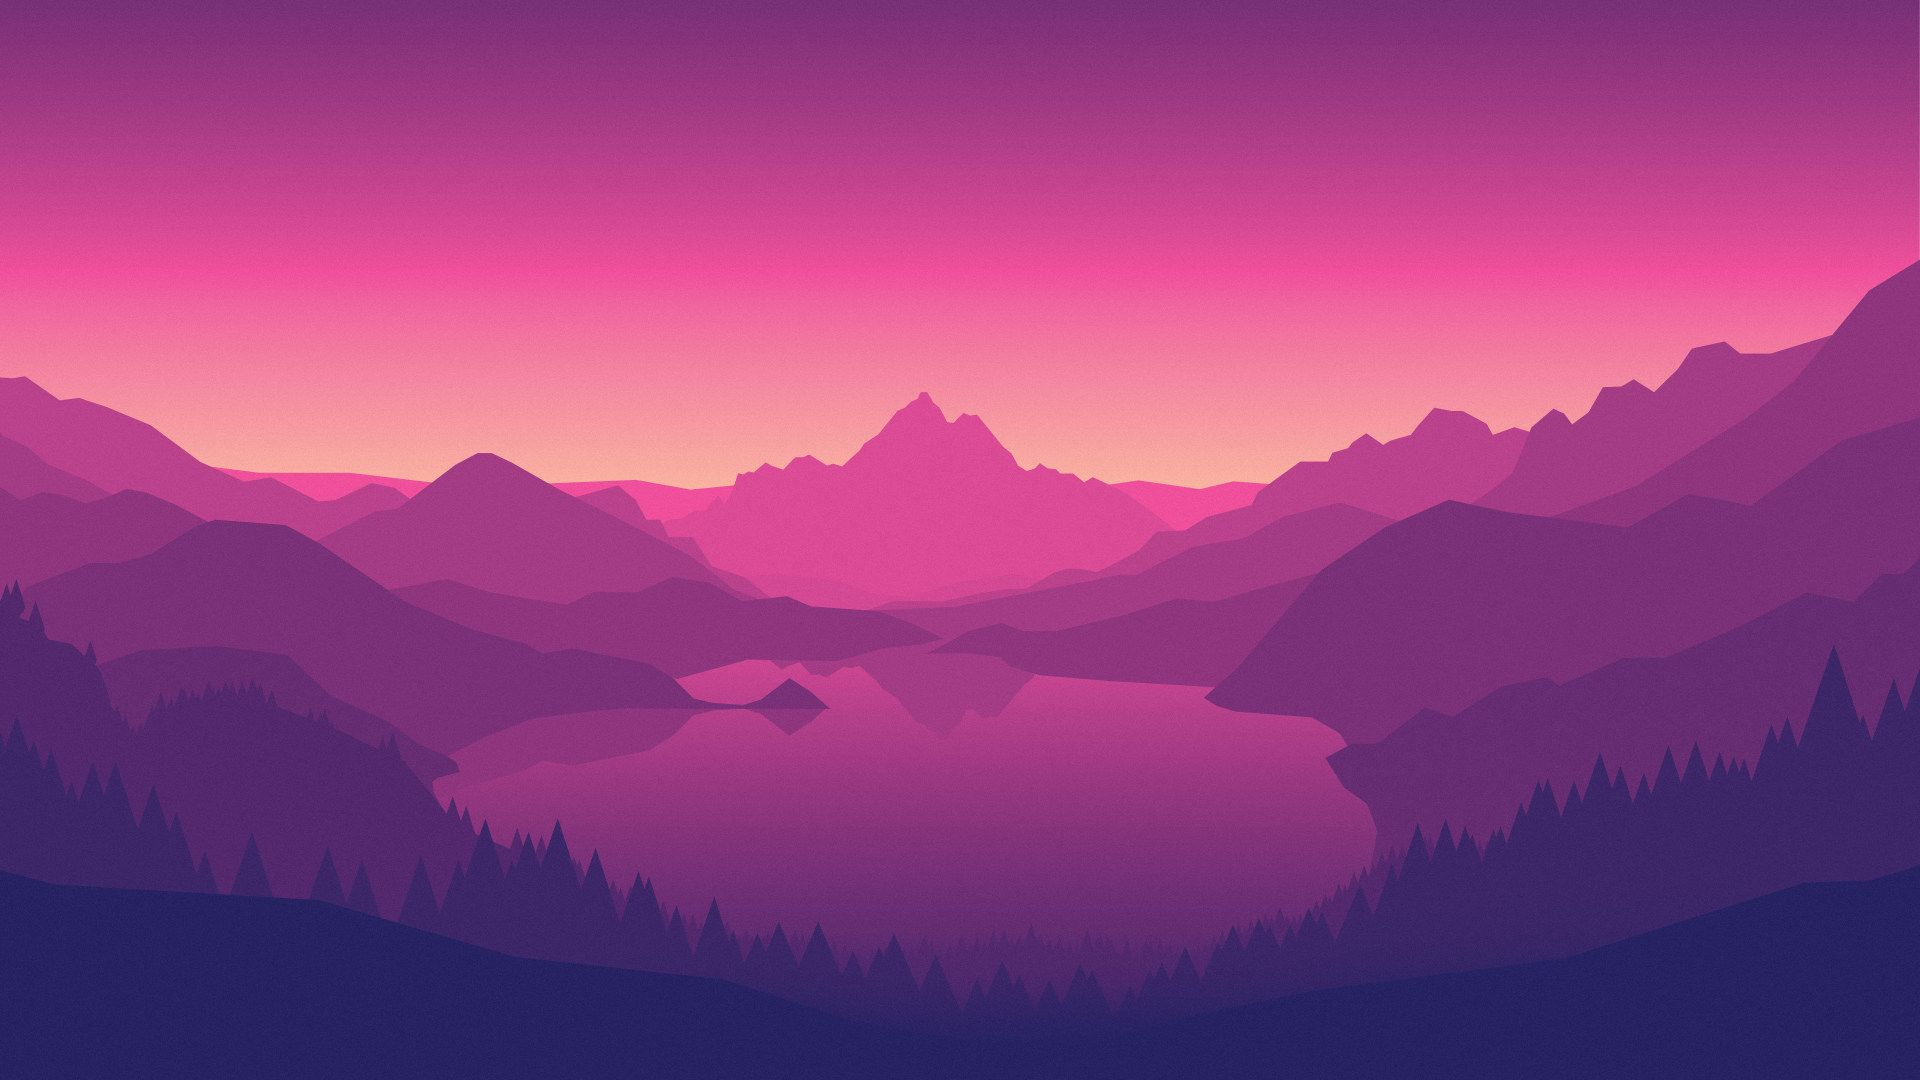 Firewatch Wallpaper, Wallpaper From The Game Purple